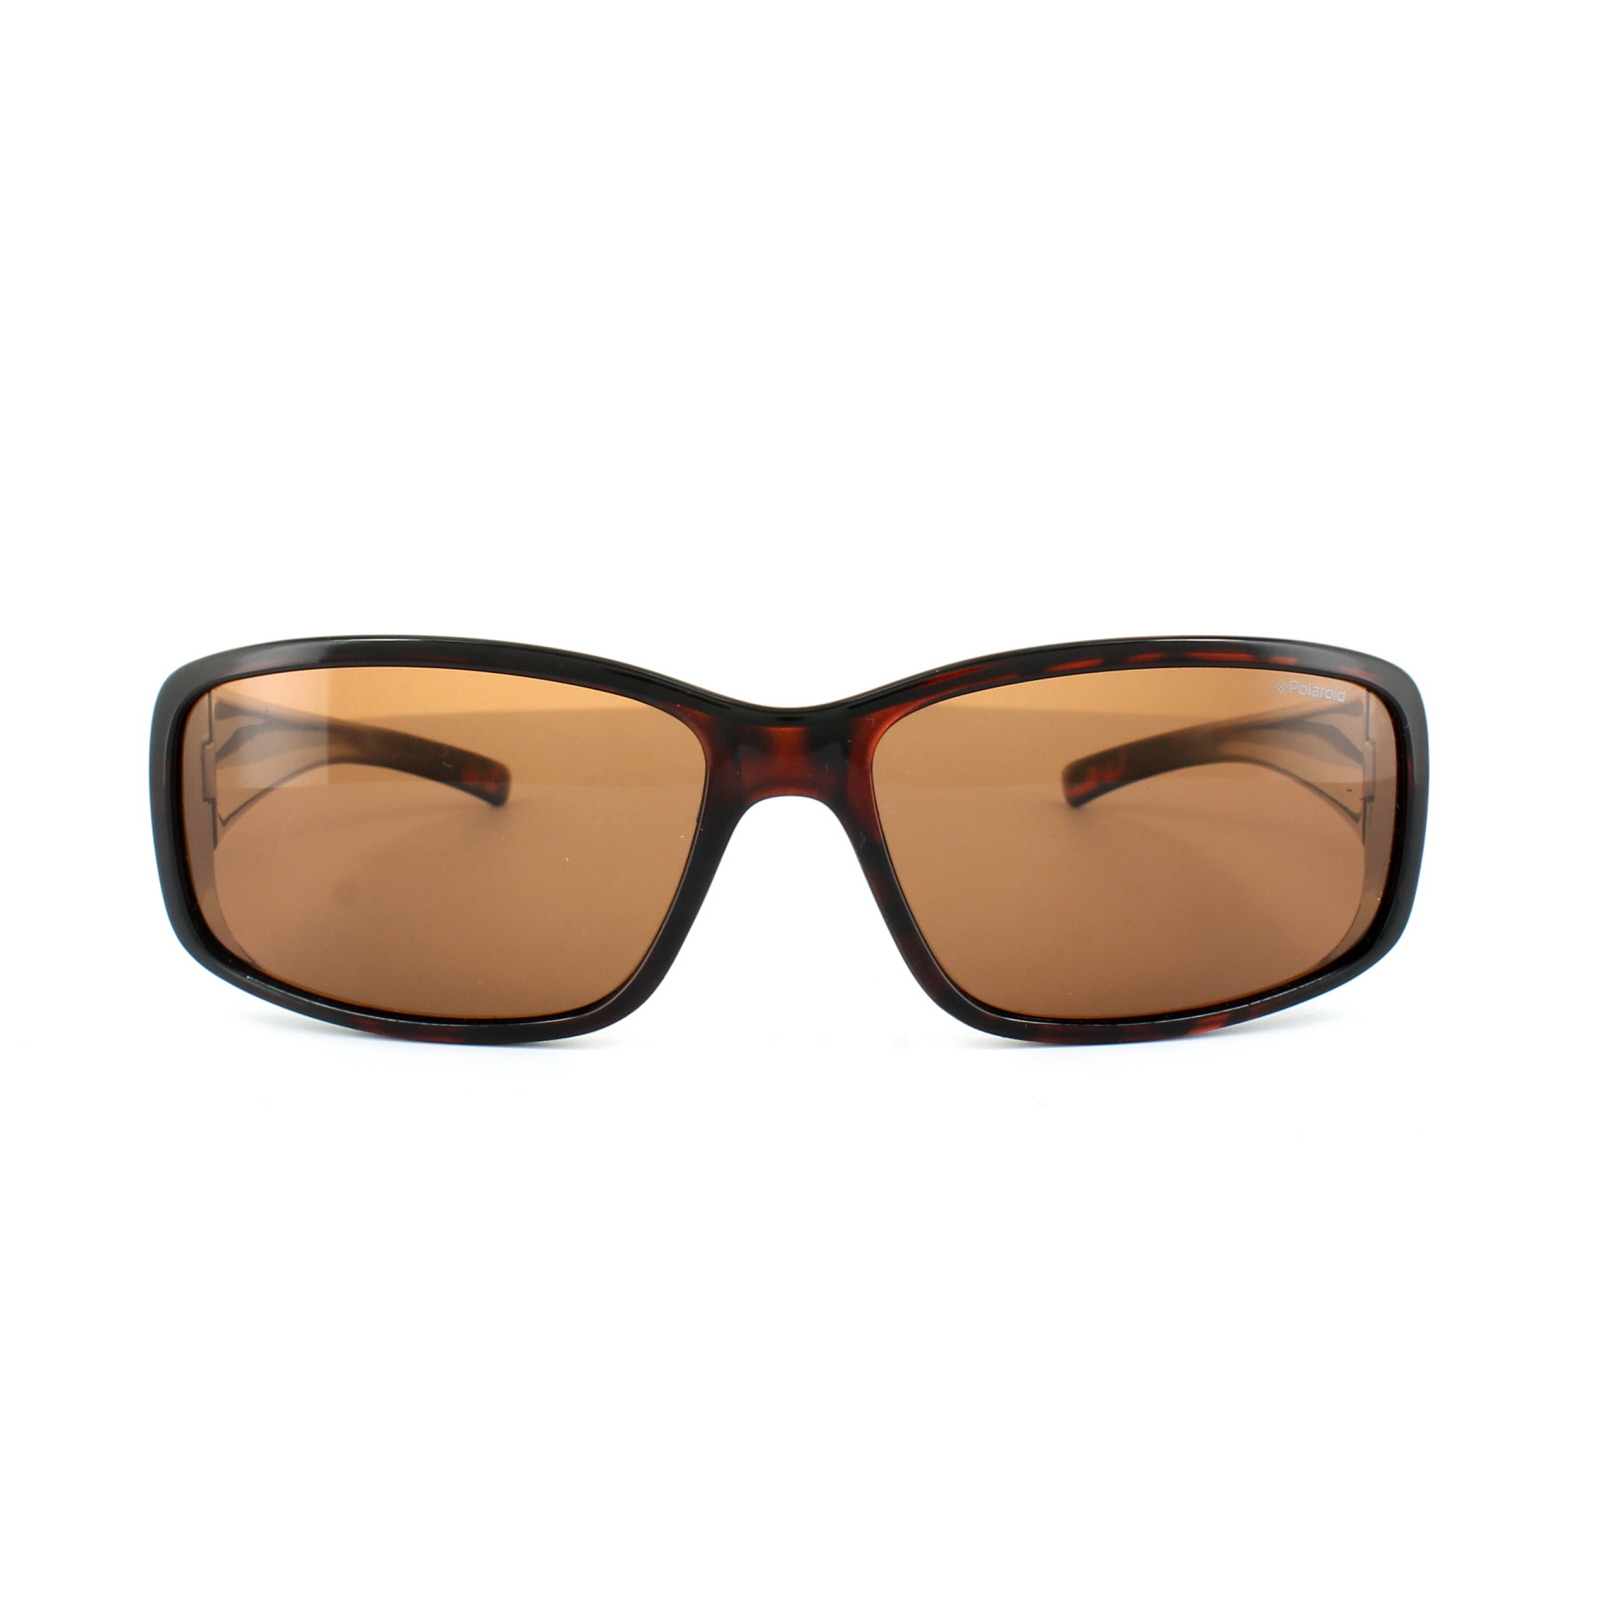 Copper Polarized Sunglasses  polaroid suncovers fitover sunglasses p8306 0bm c2 havana dark